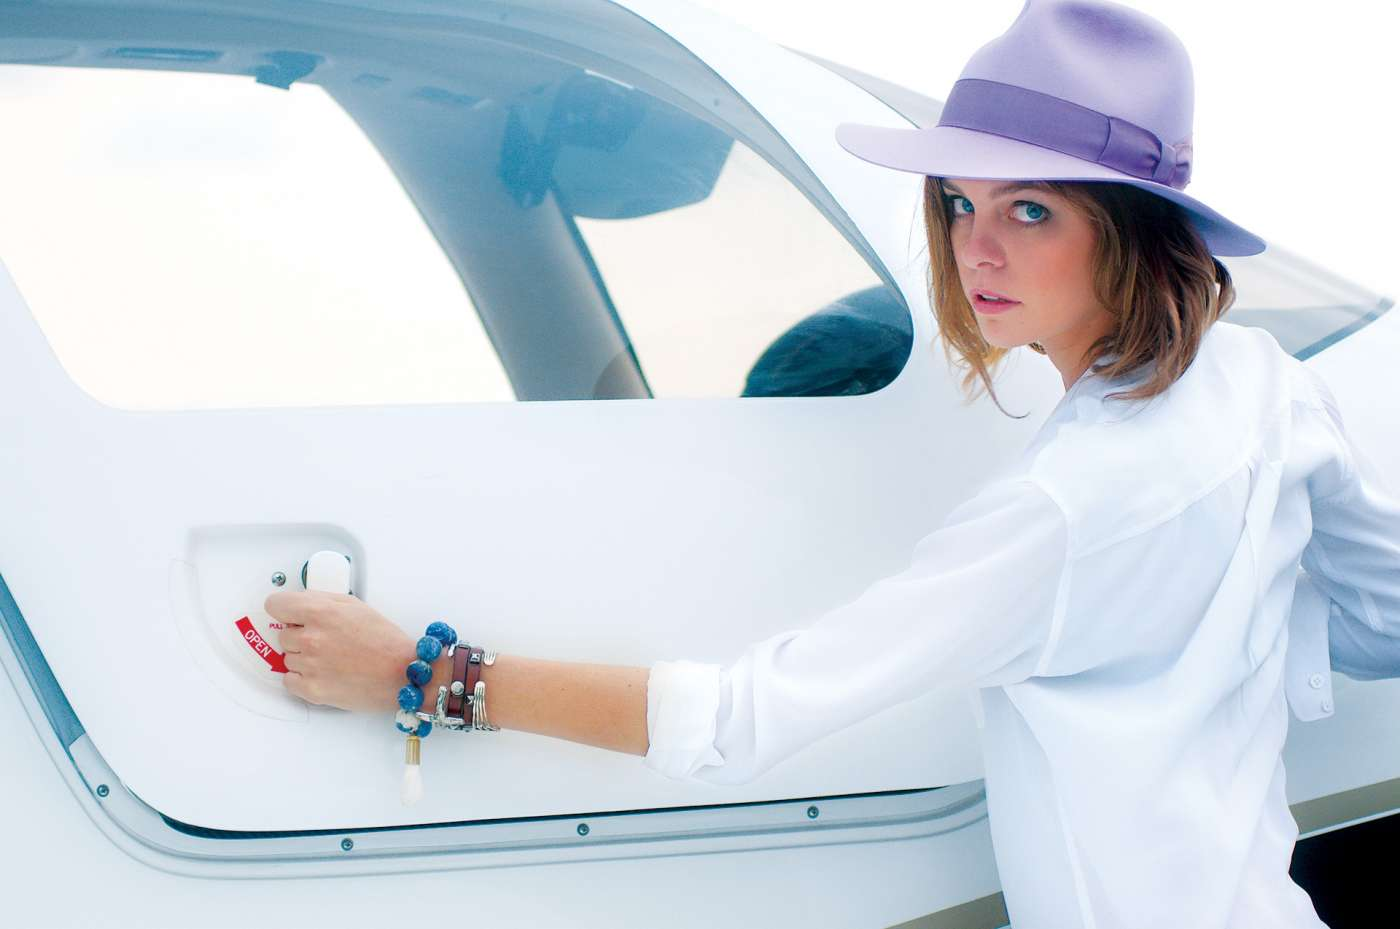 Fashion photography showing a beautiful woman opening an aircraft cockpit.